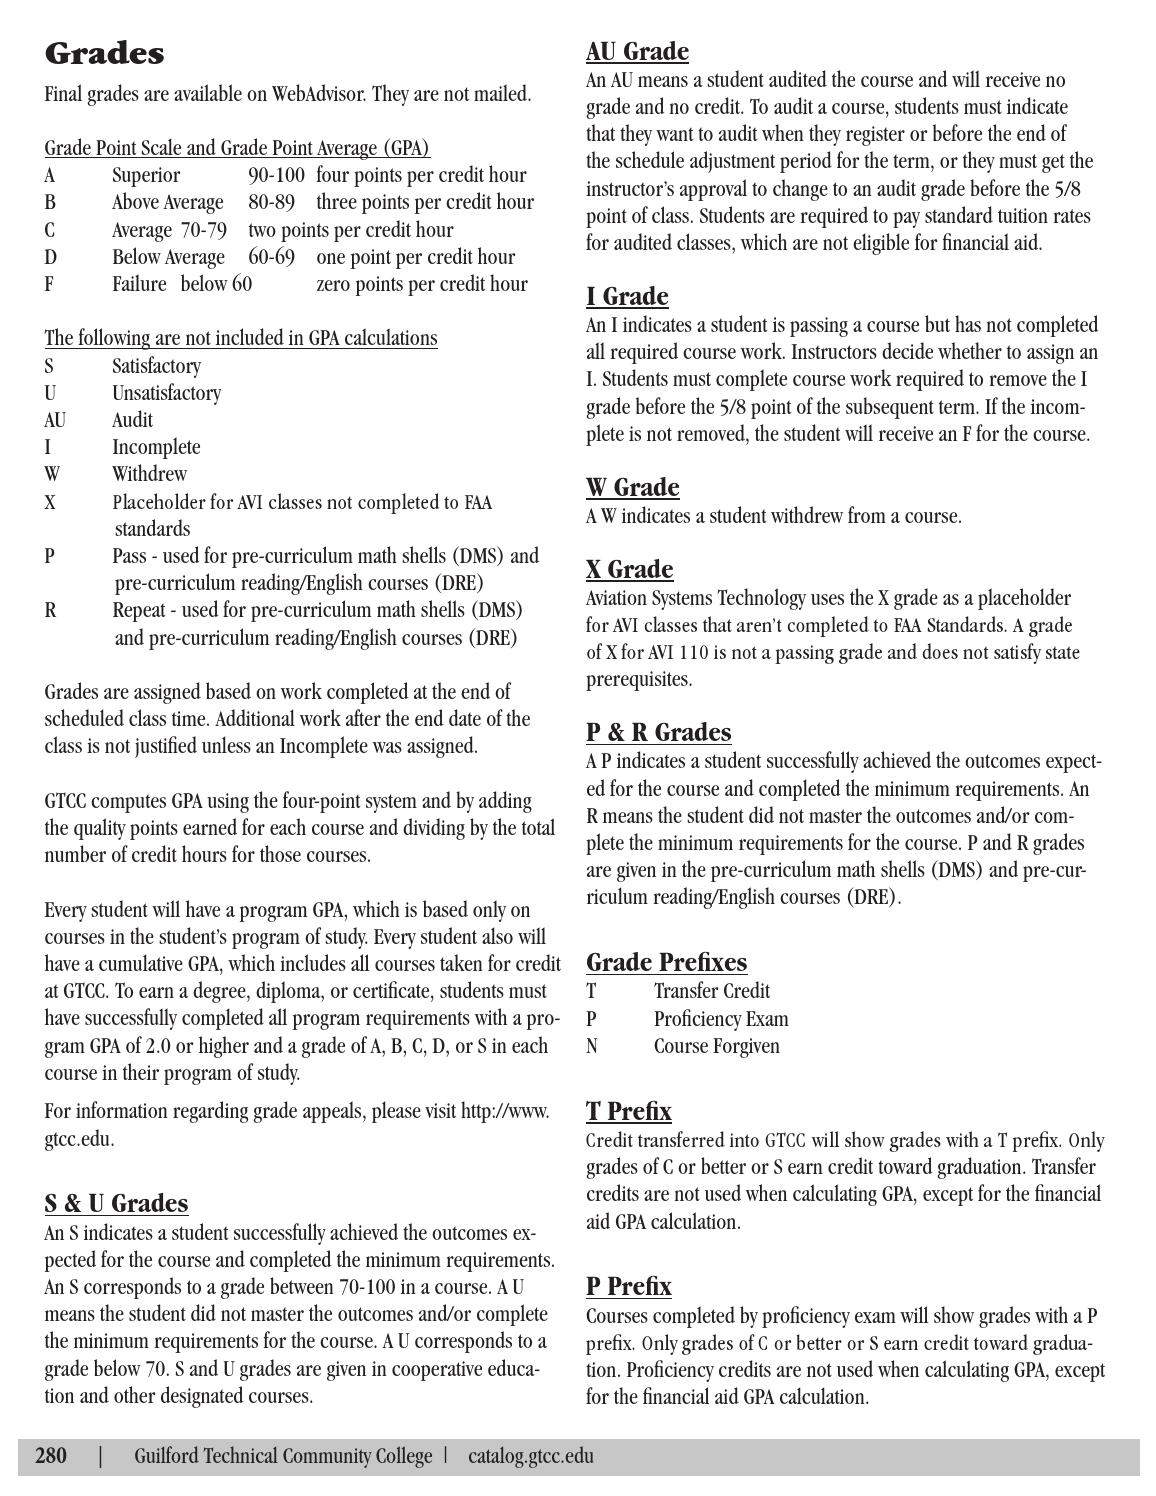 How To Calculate 20152016 Gtcc Student Catalog By Guilford Technicalmunity  College (page 282) Issuu 20152016 Gtcc Student